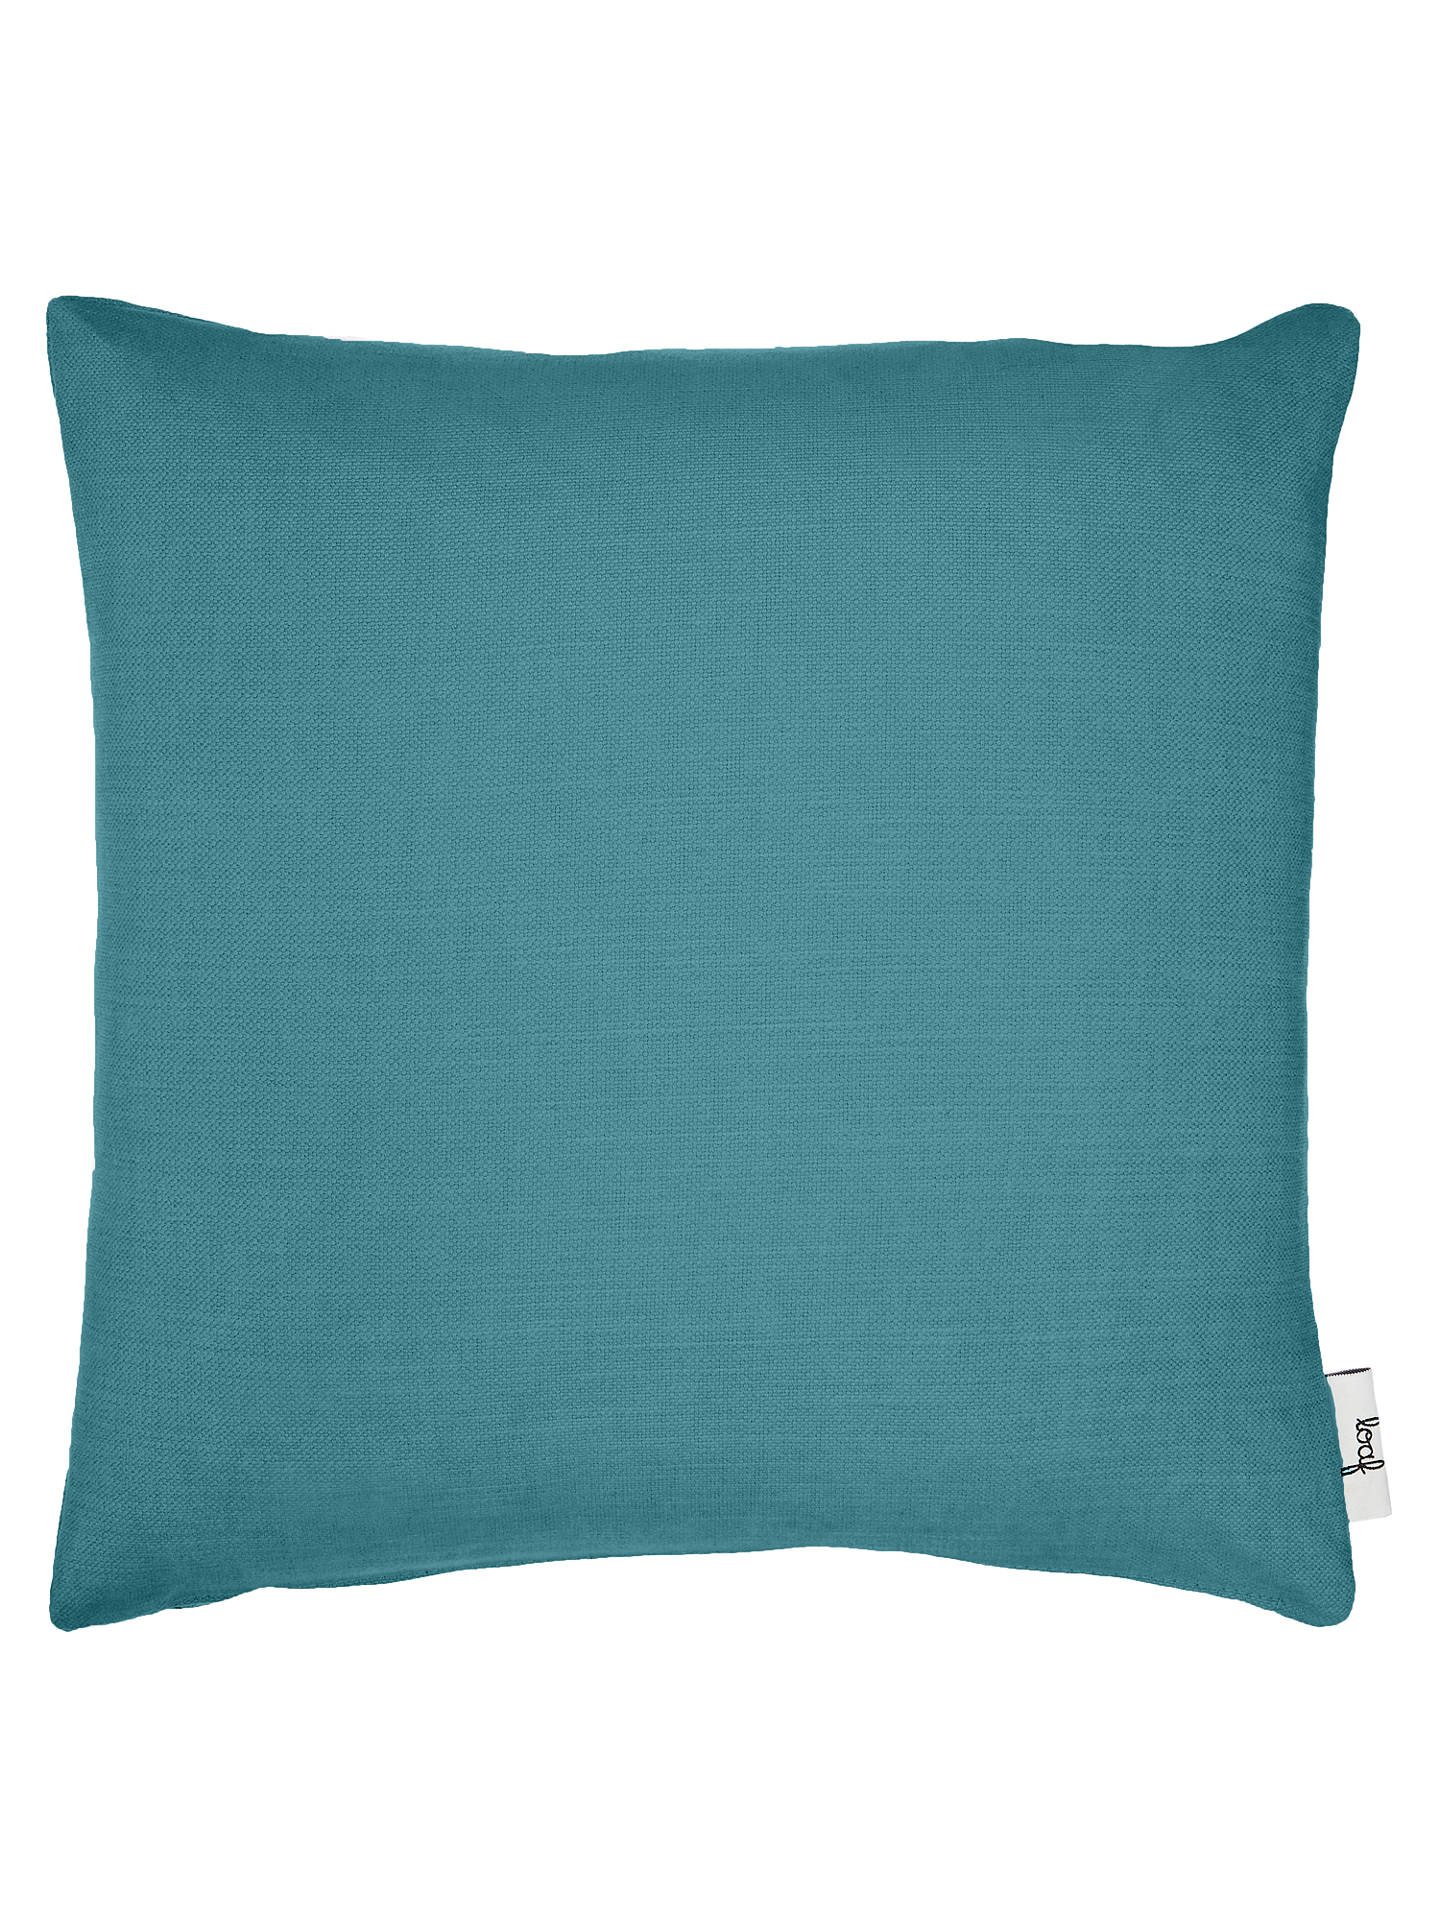 Buy Square Scatter Cushion by Loaf at John Lewis, Brushed Cotton Teal Online at johnlewis.com